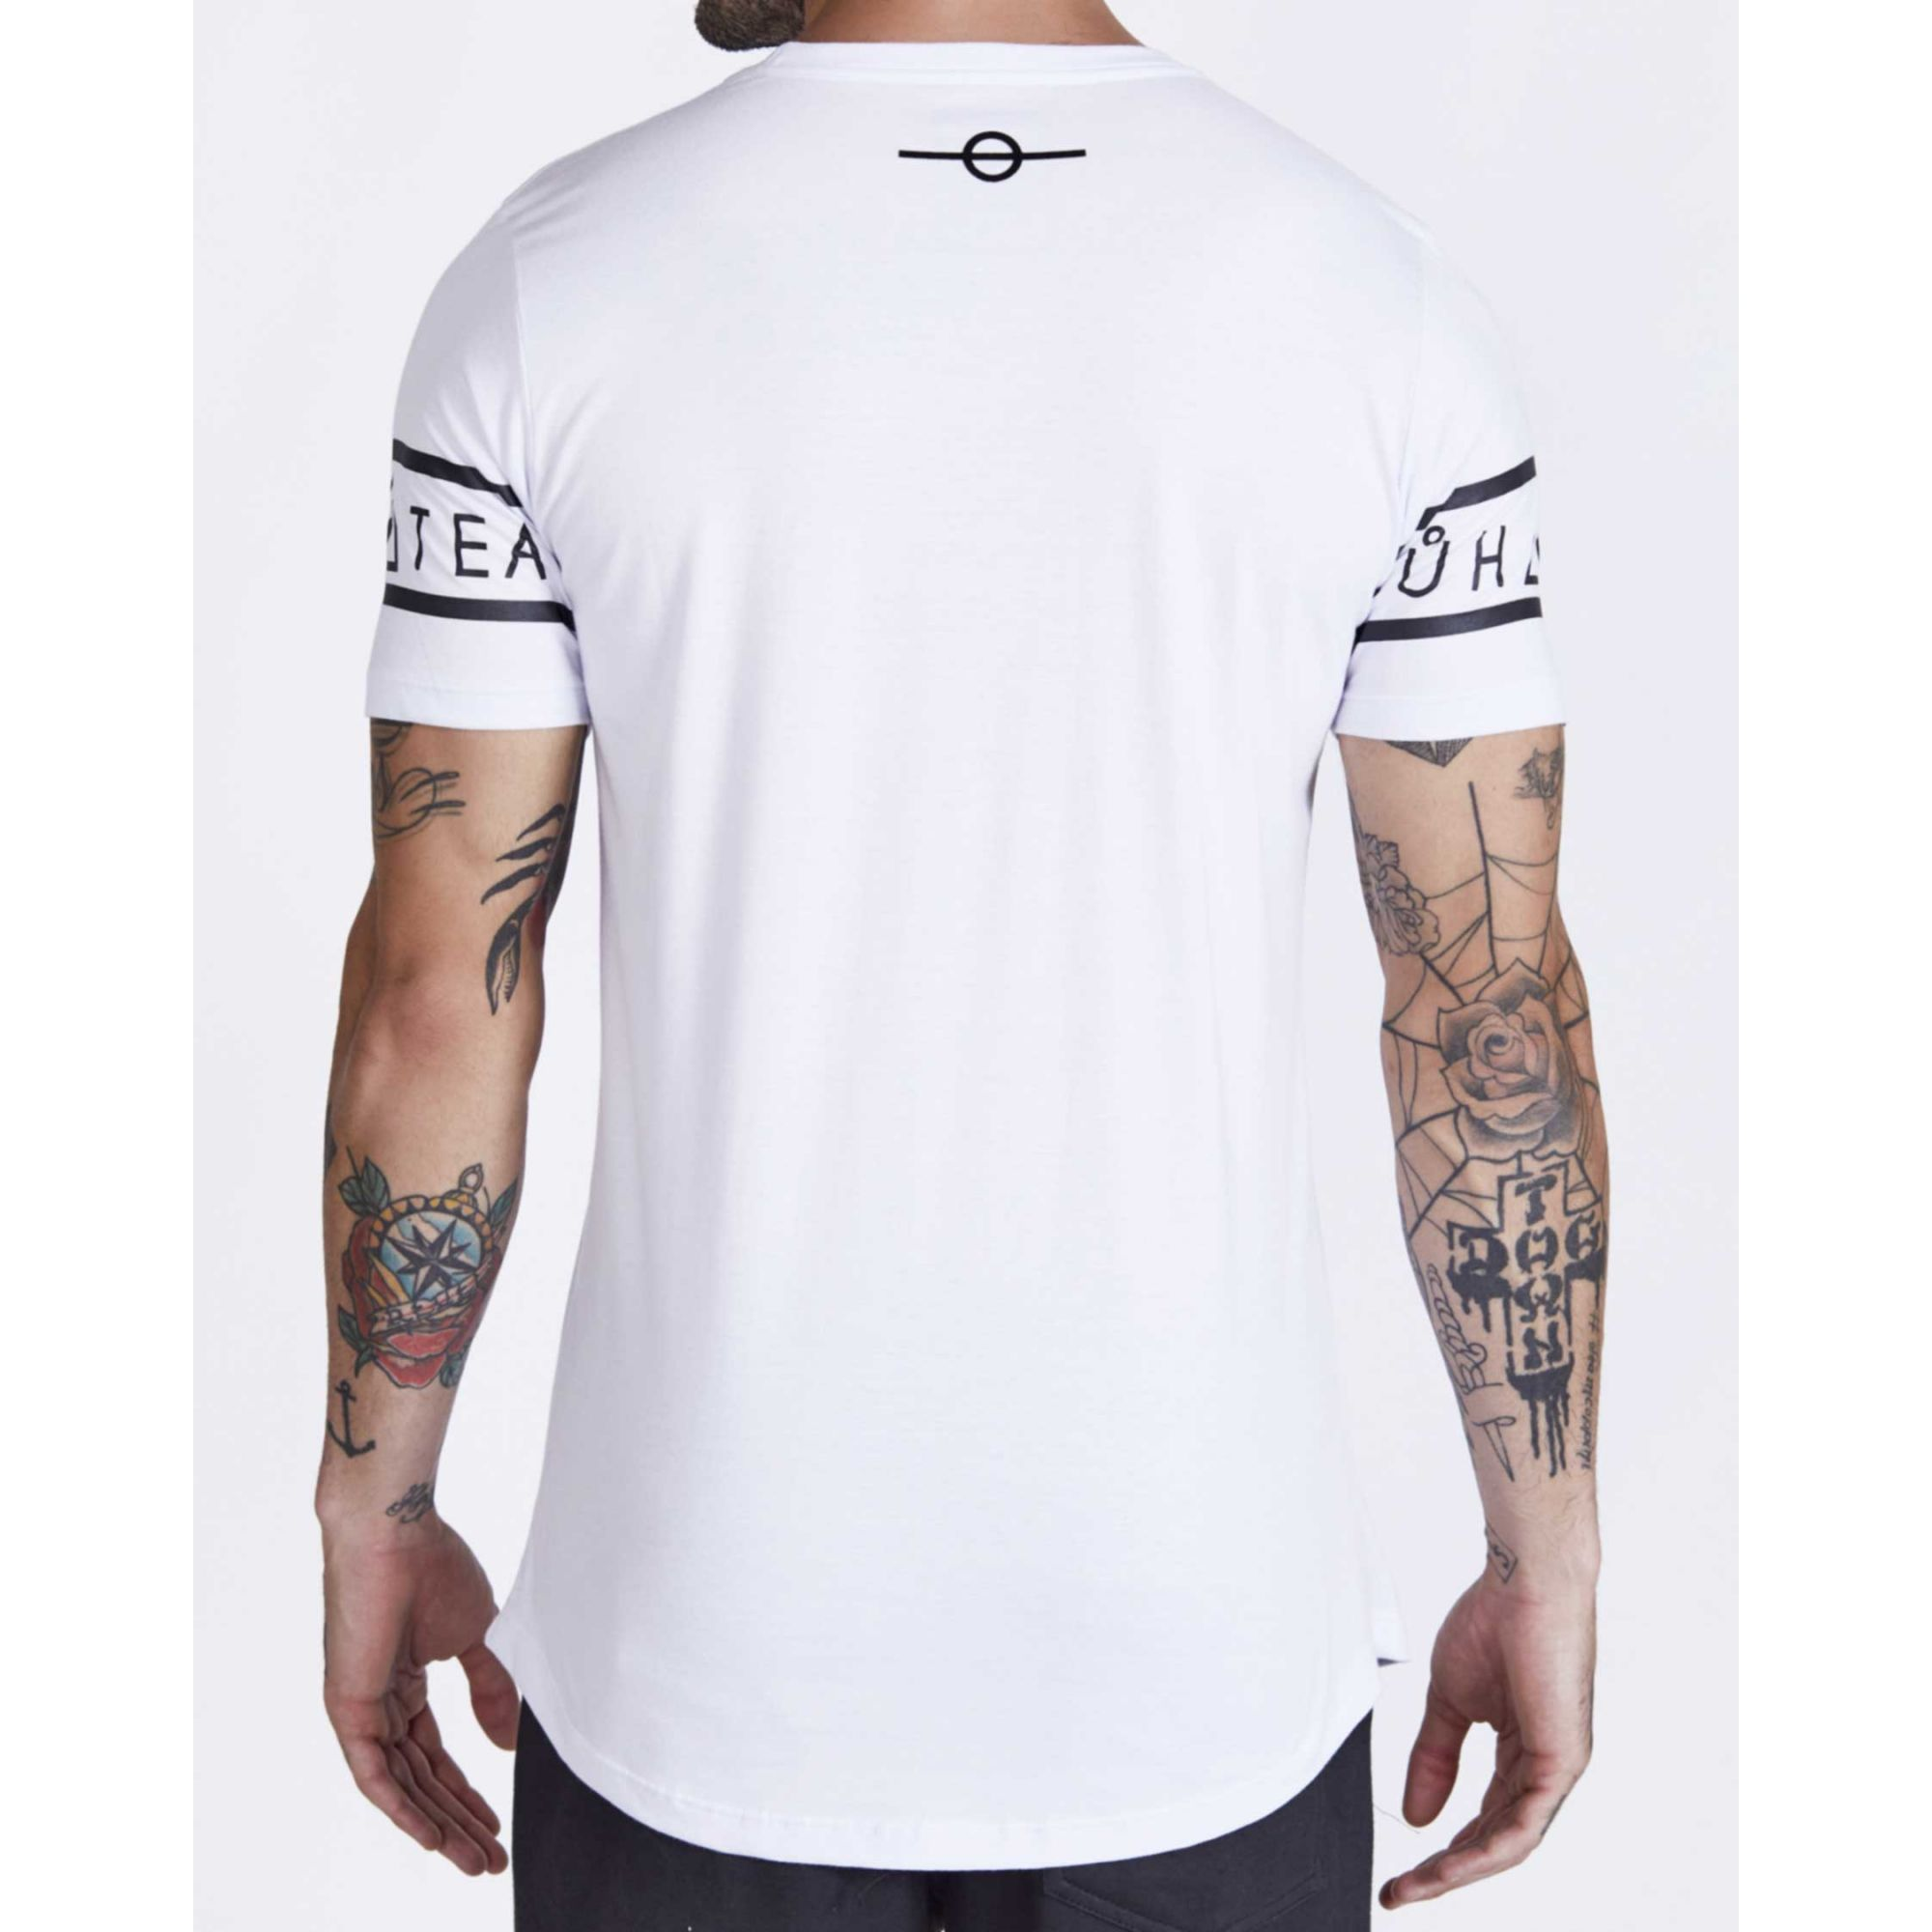 Camiseta Buh Sleeve White